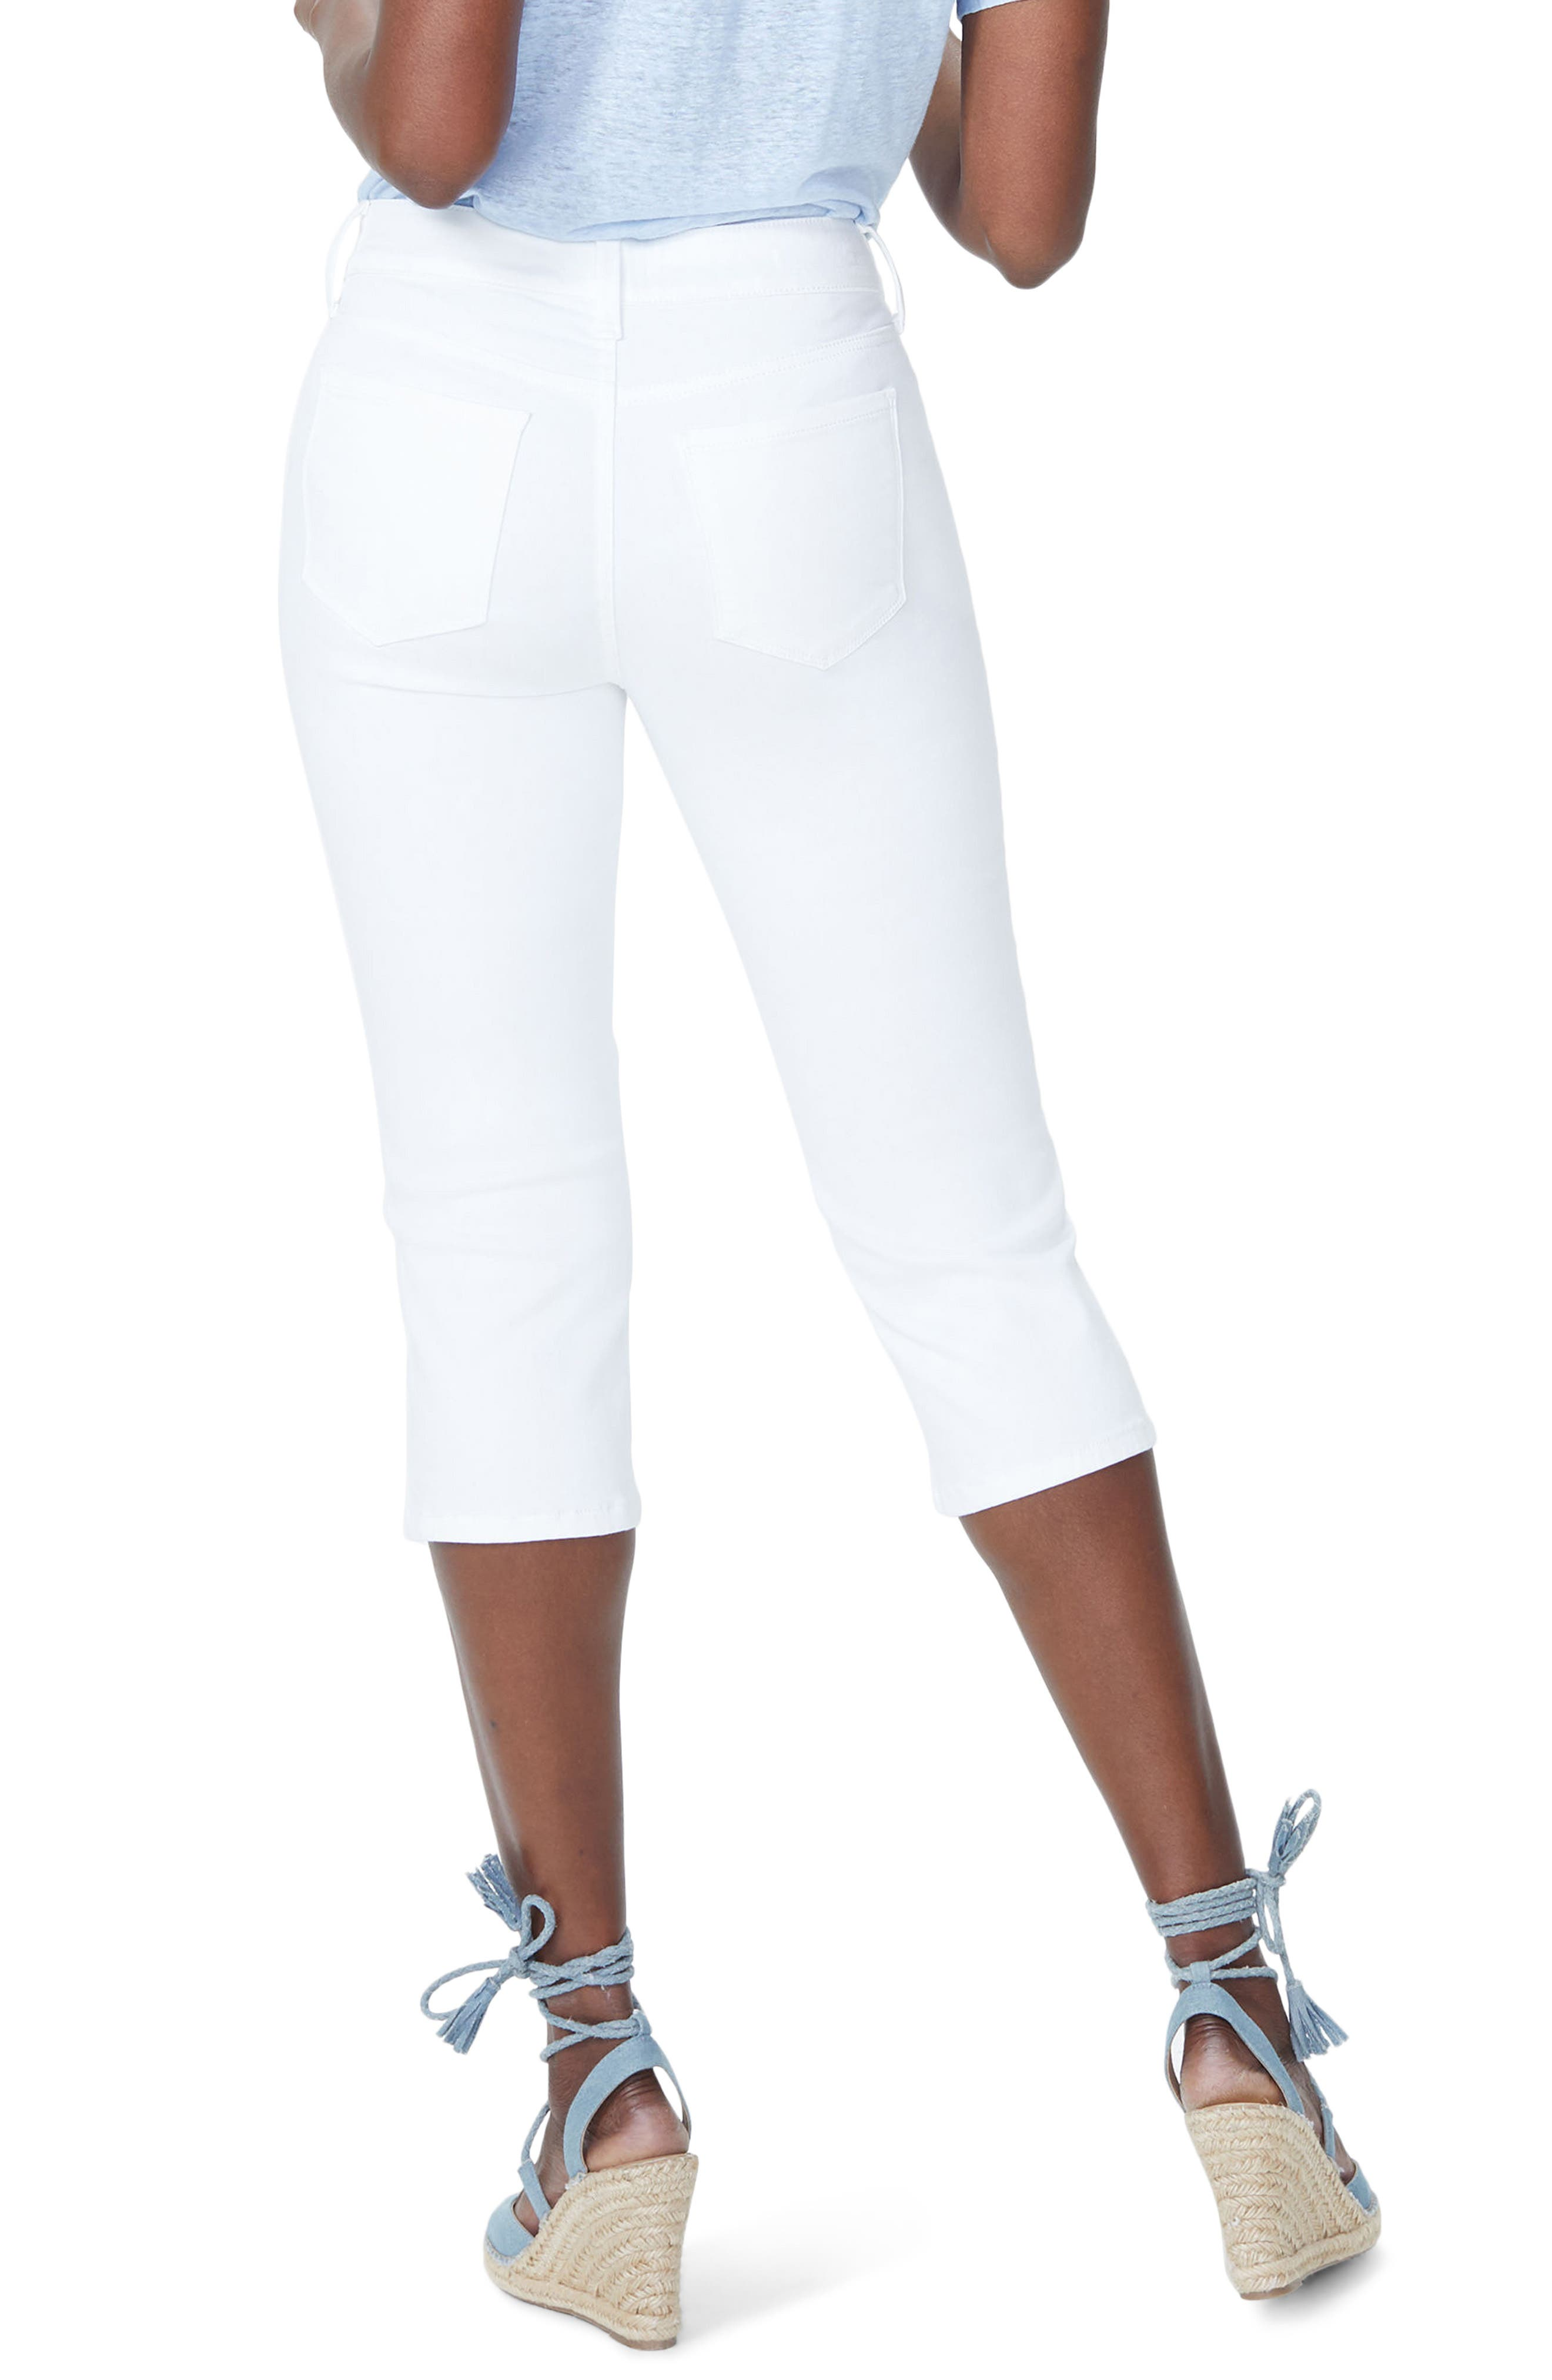 Marilyn Eyelet Hem Stretch Crop Jeans,                             Alternate thumbnail 3, color,                             Optic White